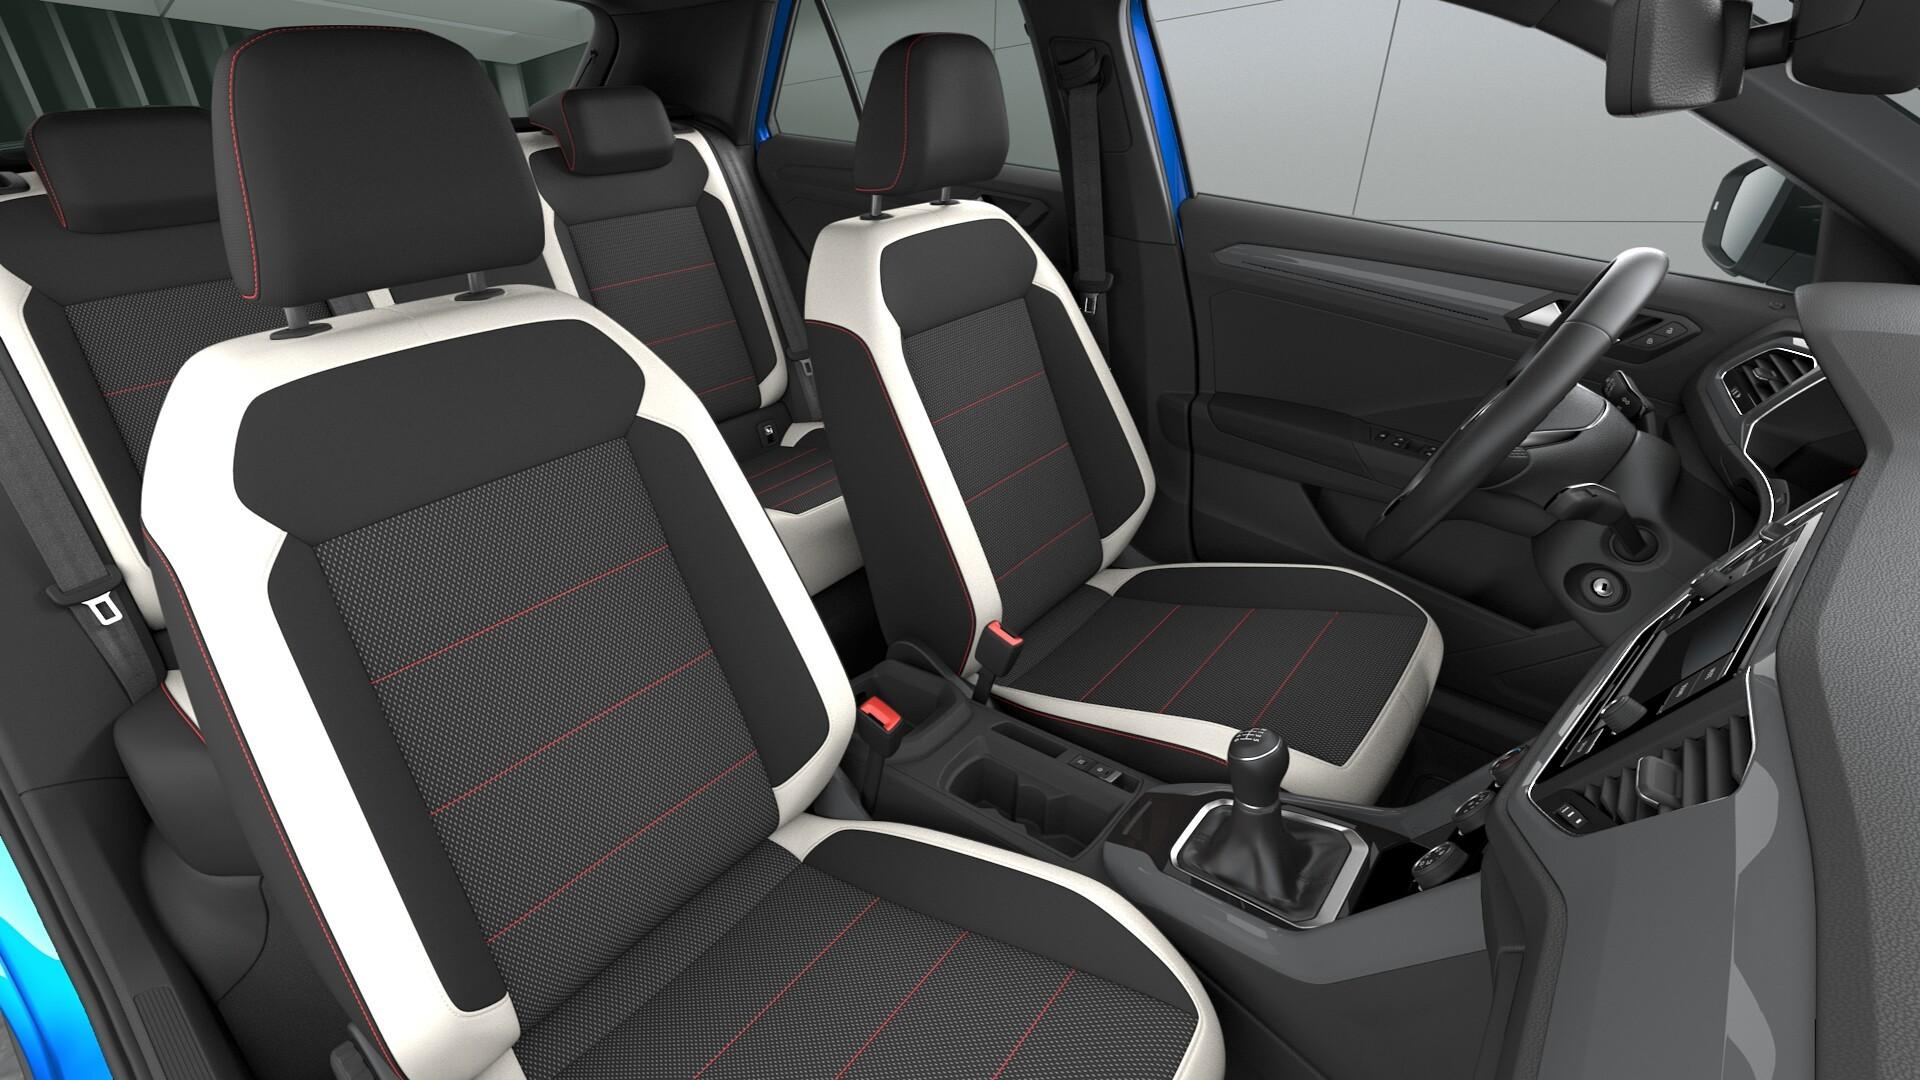 eu neuwagen volkswagen t roc sport active info display. Black Bedroom Furniture Sets. Home Design Ideas